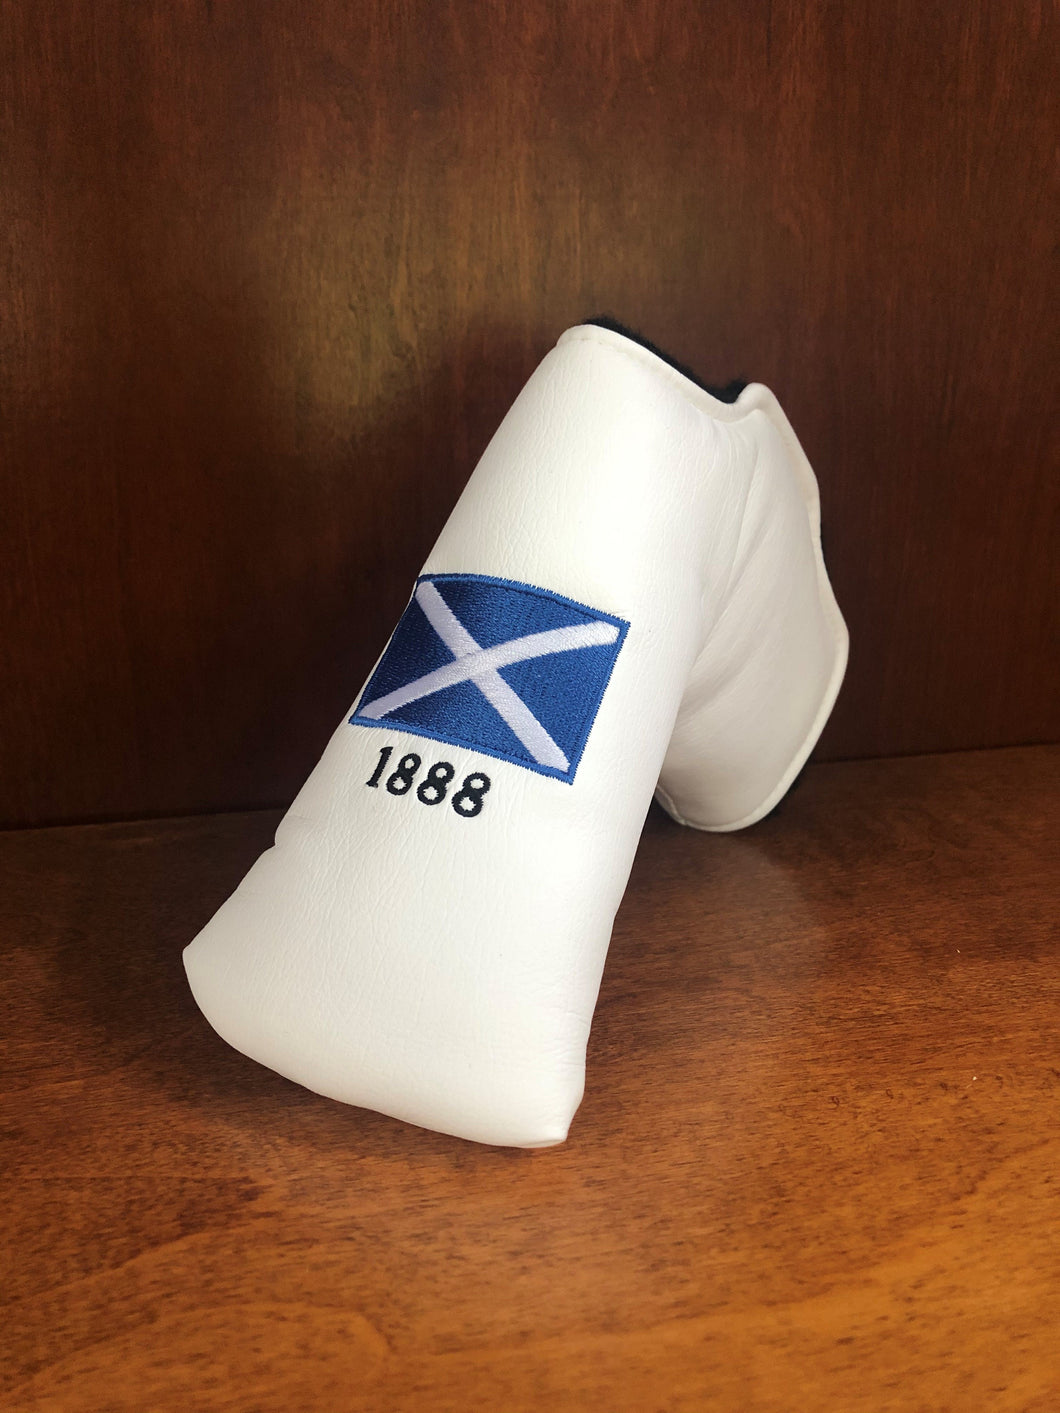 AM&E Leather Putter Covers